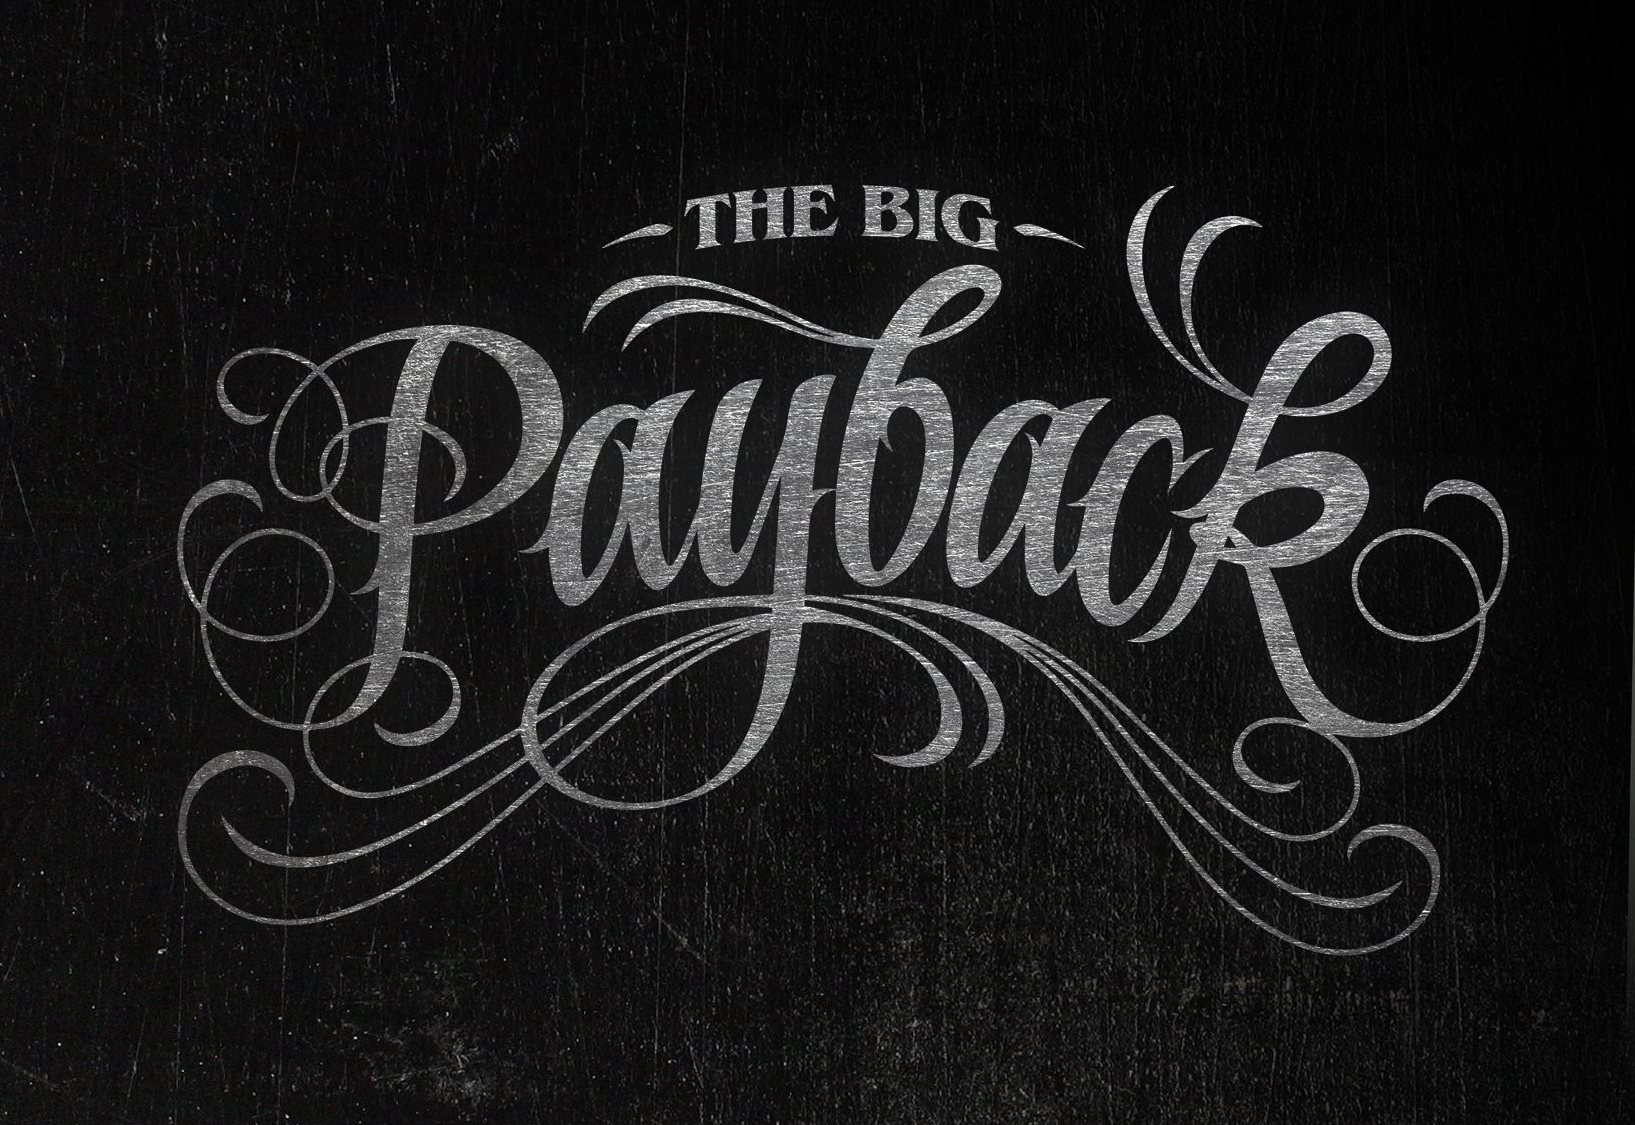 Cigar News: Room101 The Big Payback Maduro Launched at 2019 IPCPR